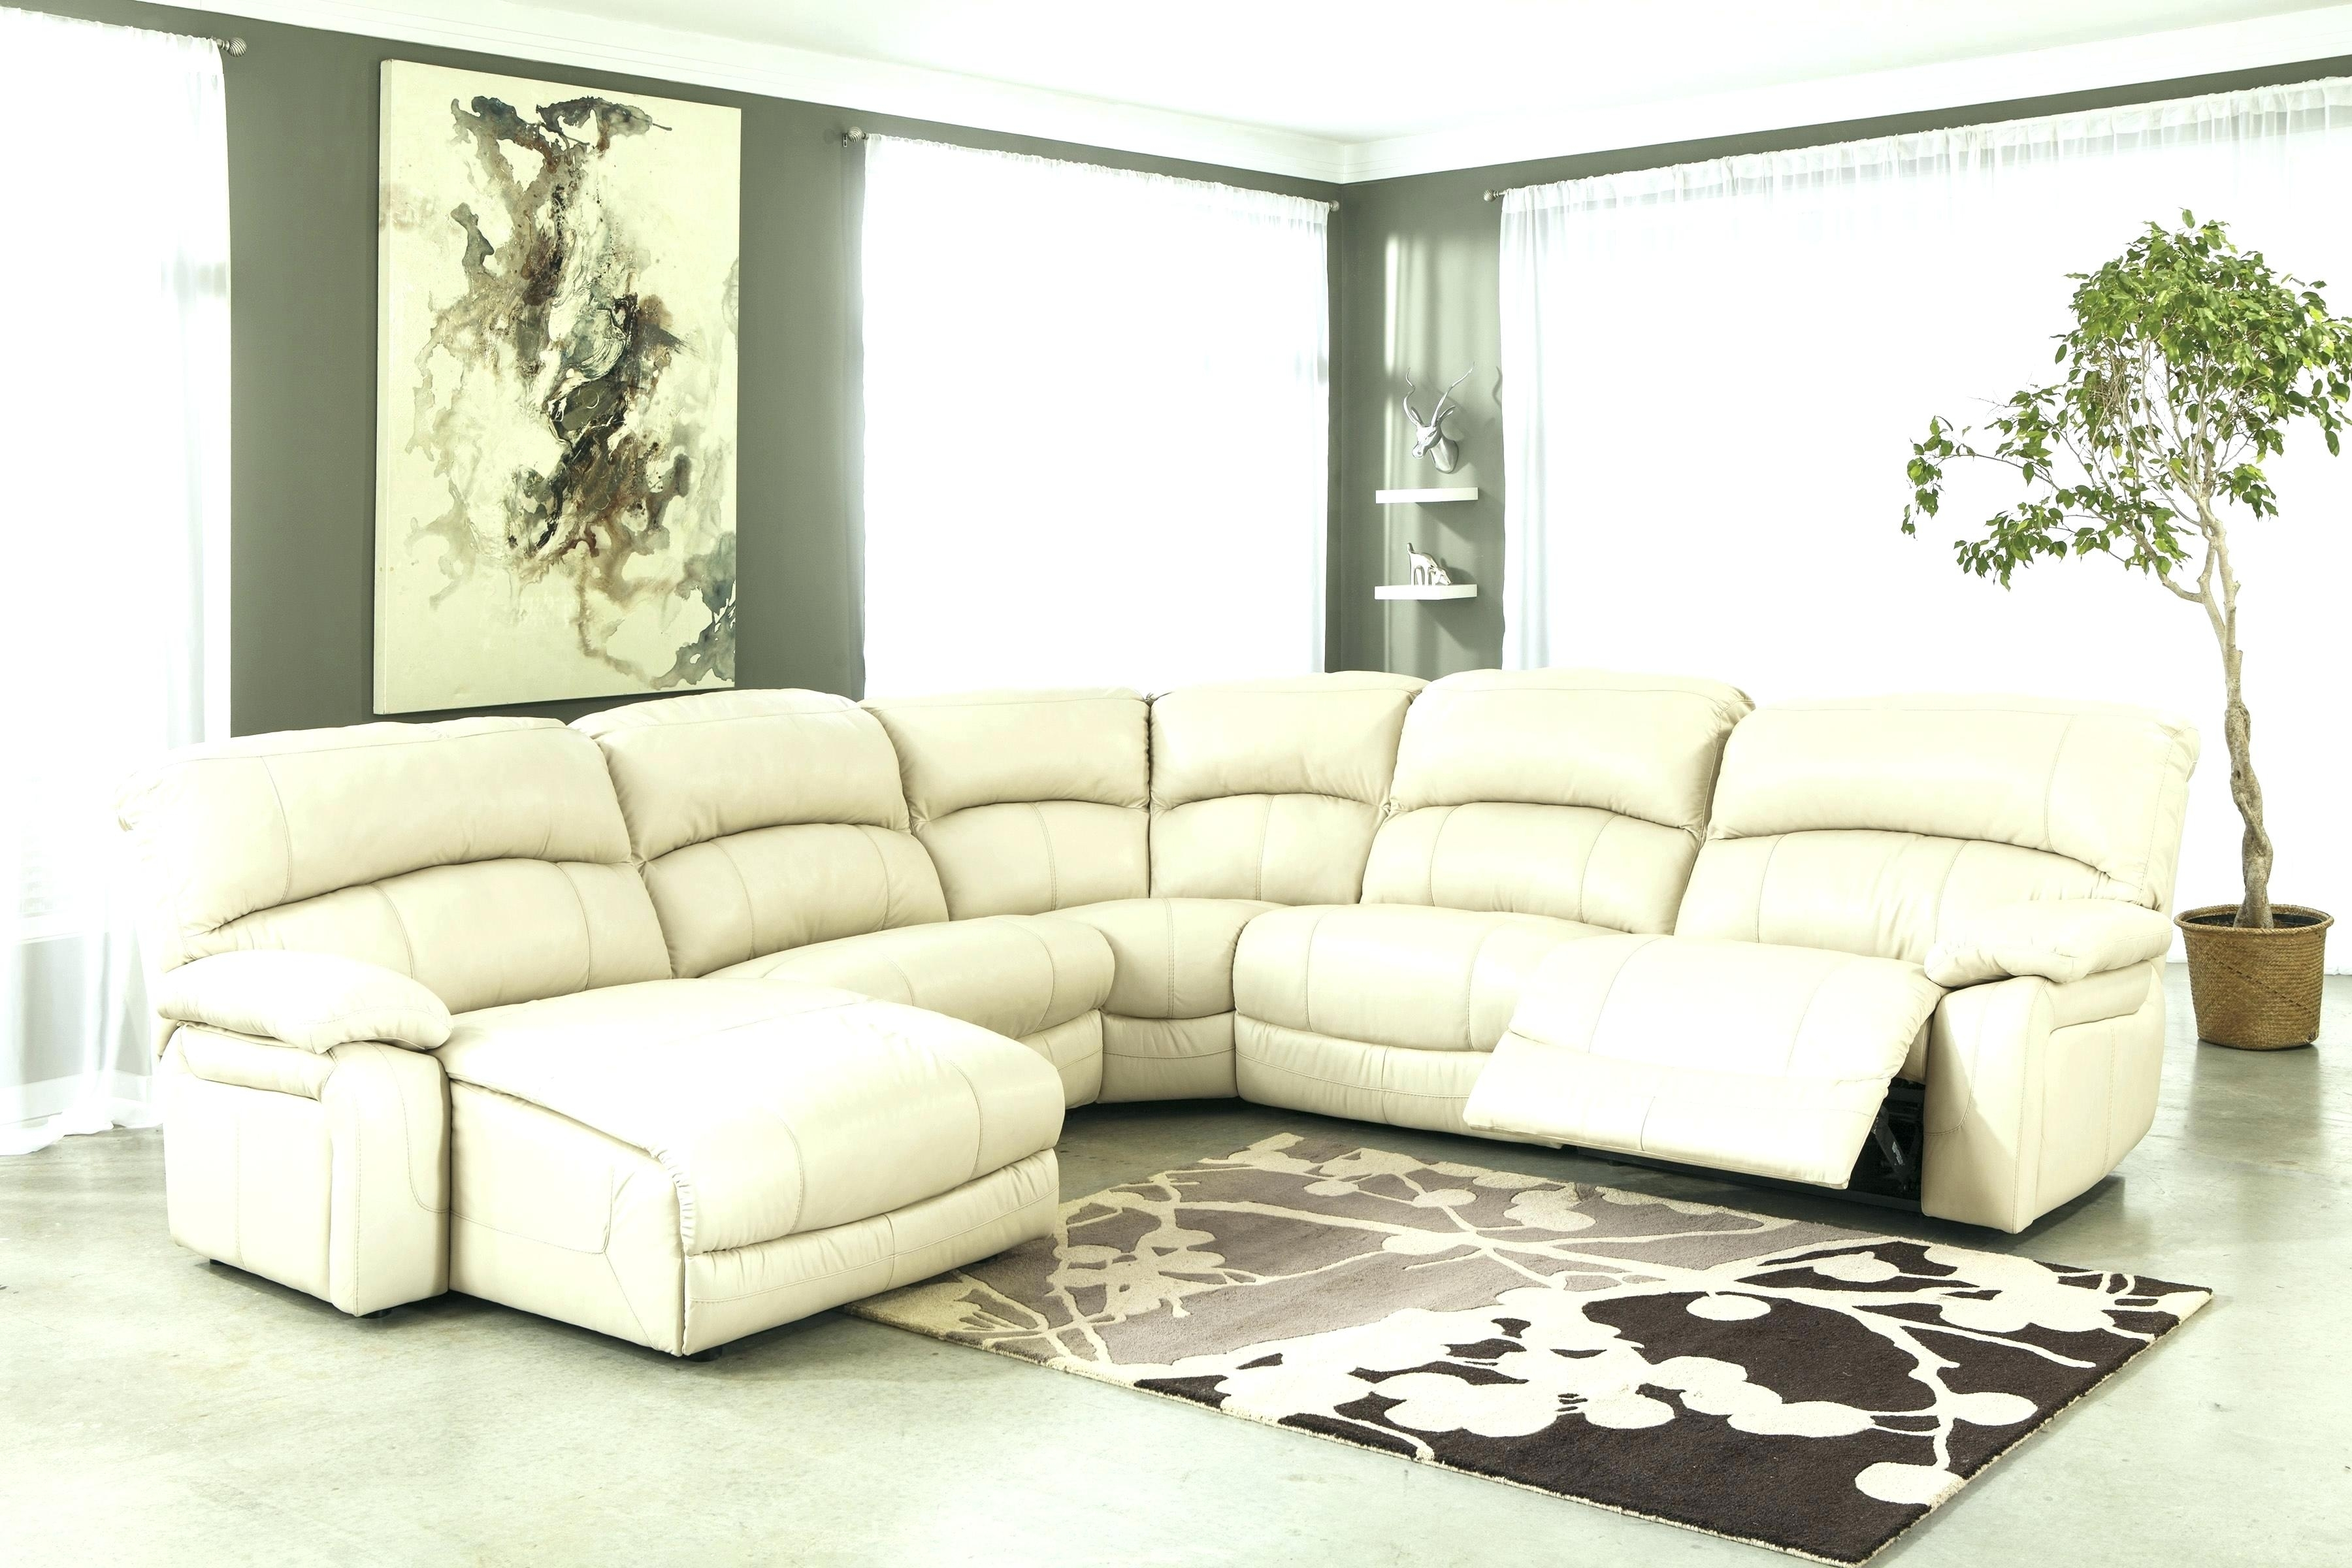 Contemporary Leather Sofas Sofa Fabulous Modern Furniture Italian Within High Point Nc Sectional Sofas (View 8 of 10)